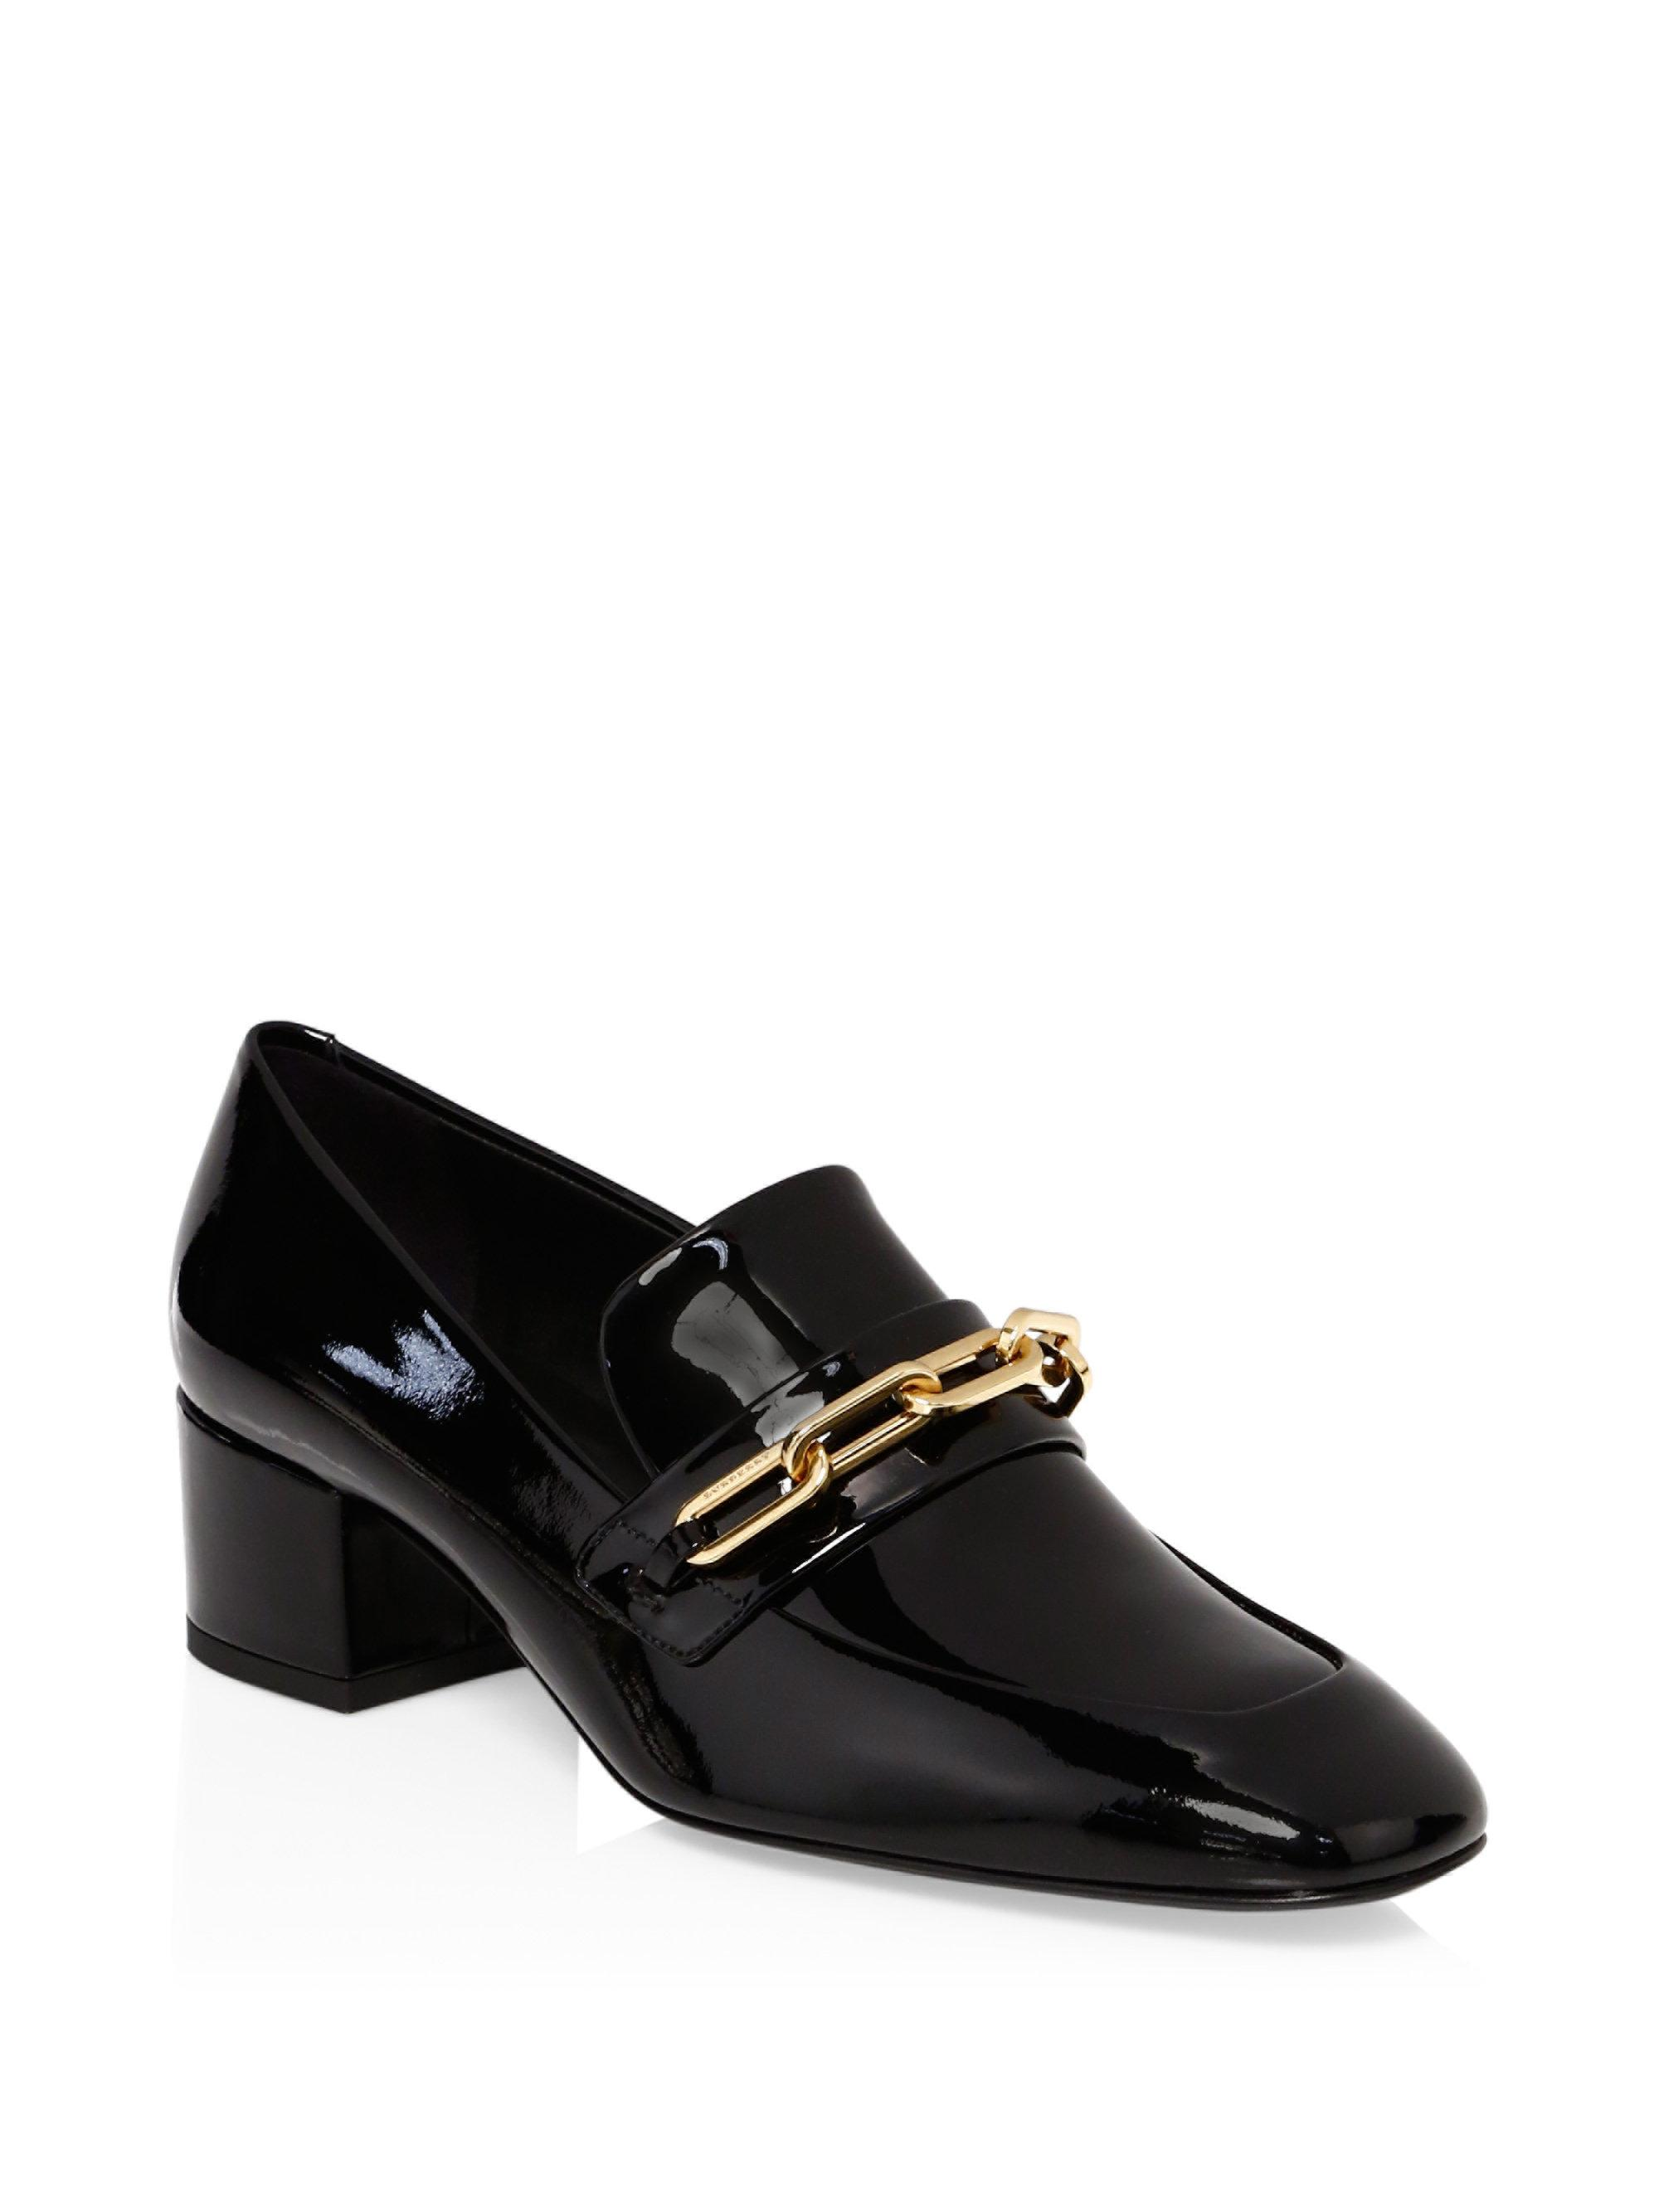 Burberry Link Detail Patent Leather